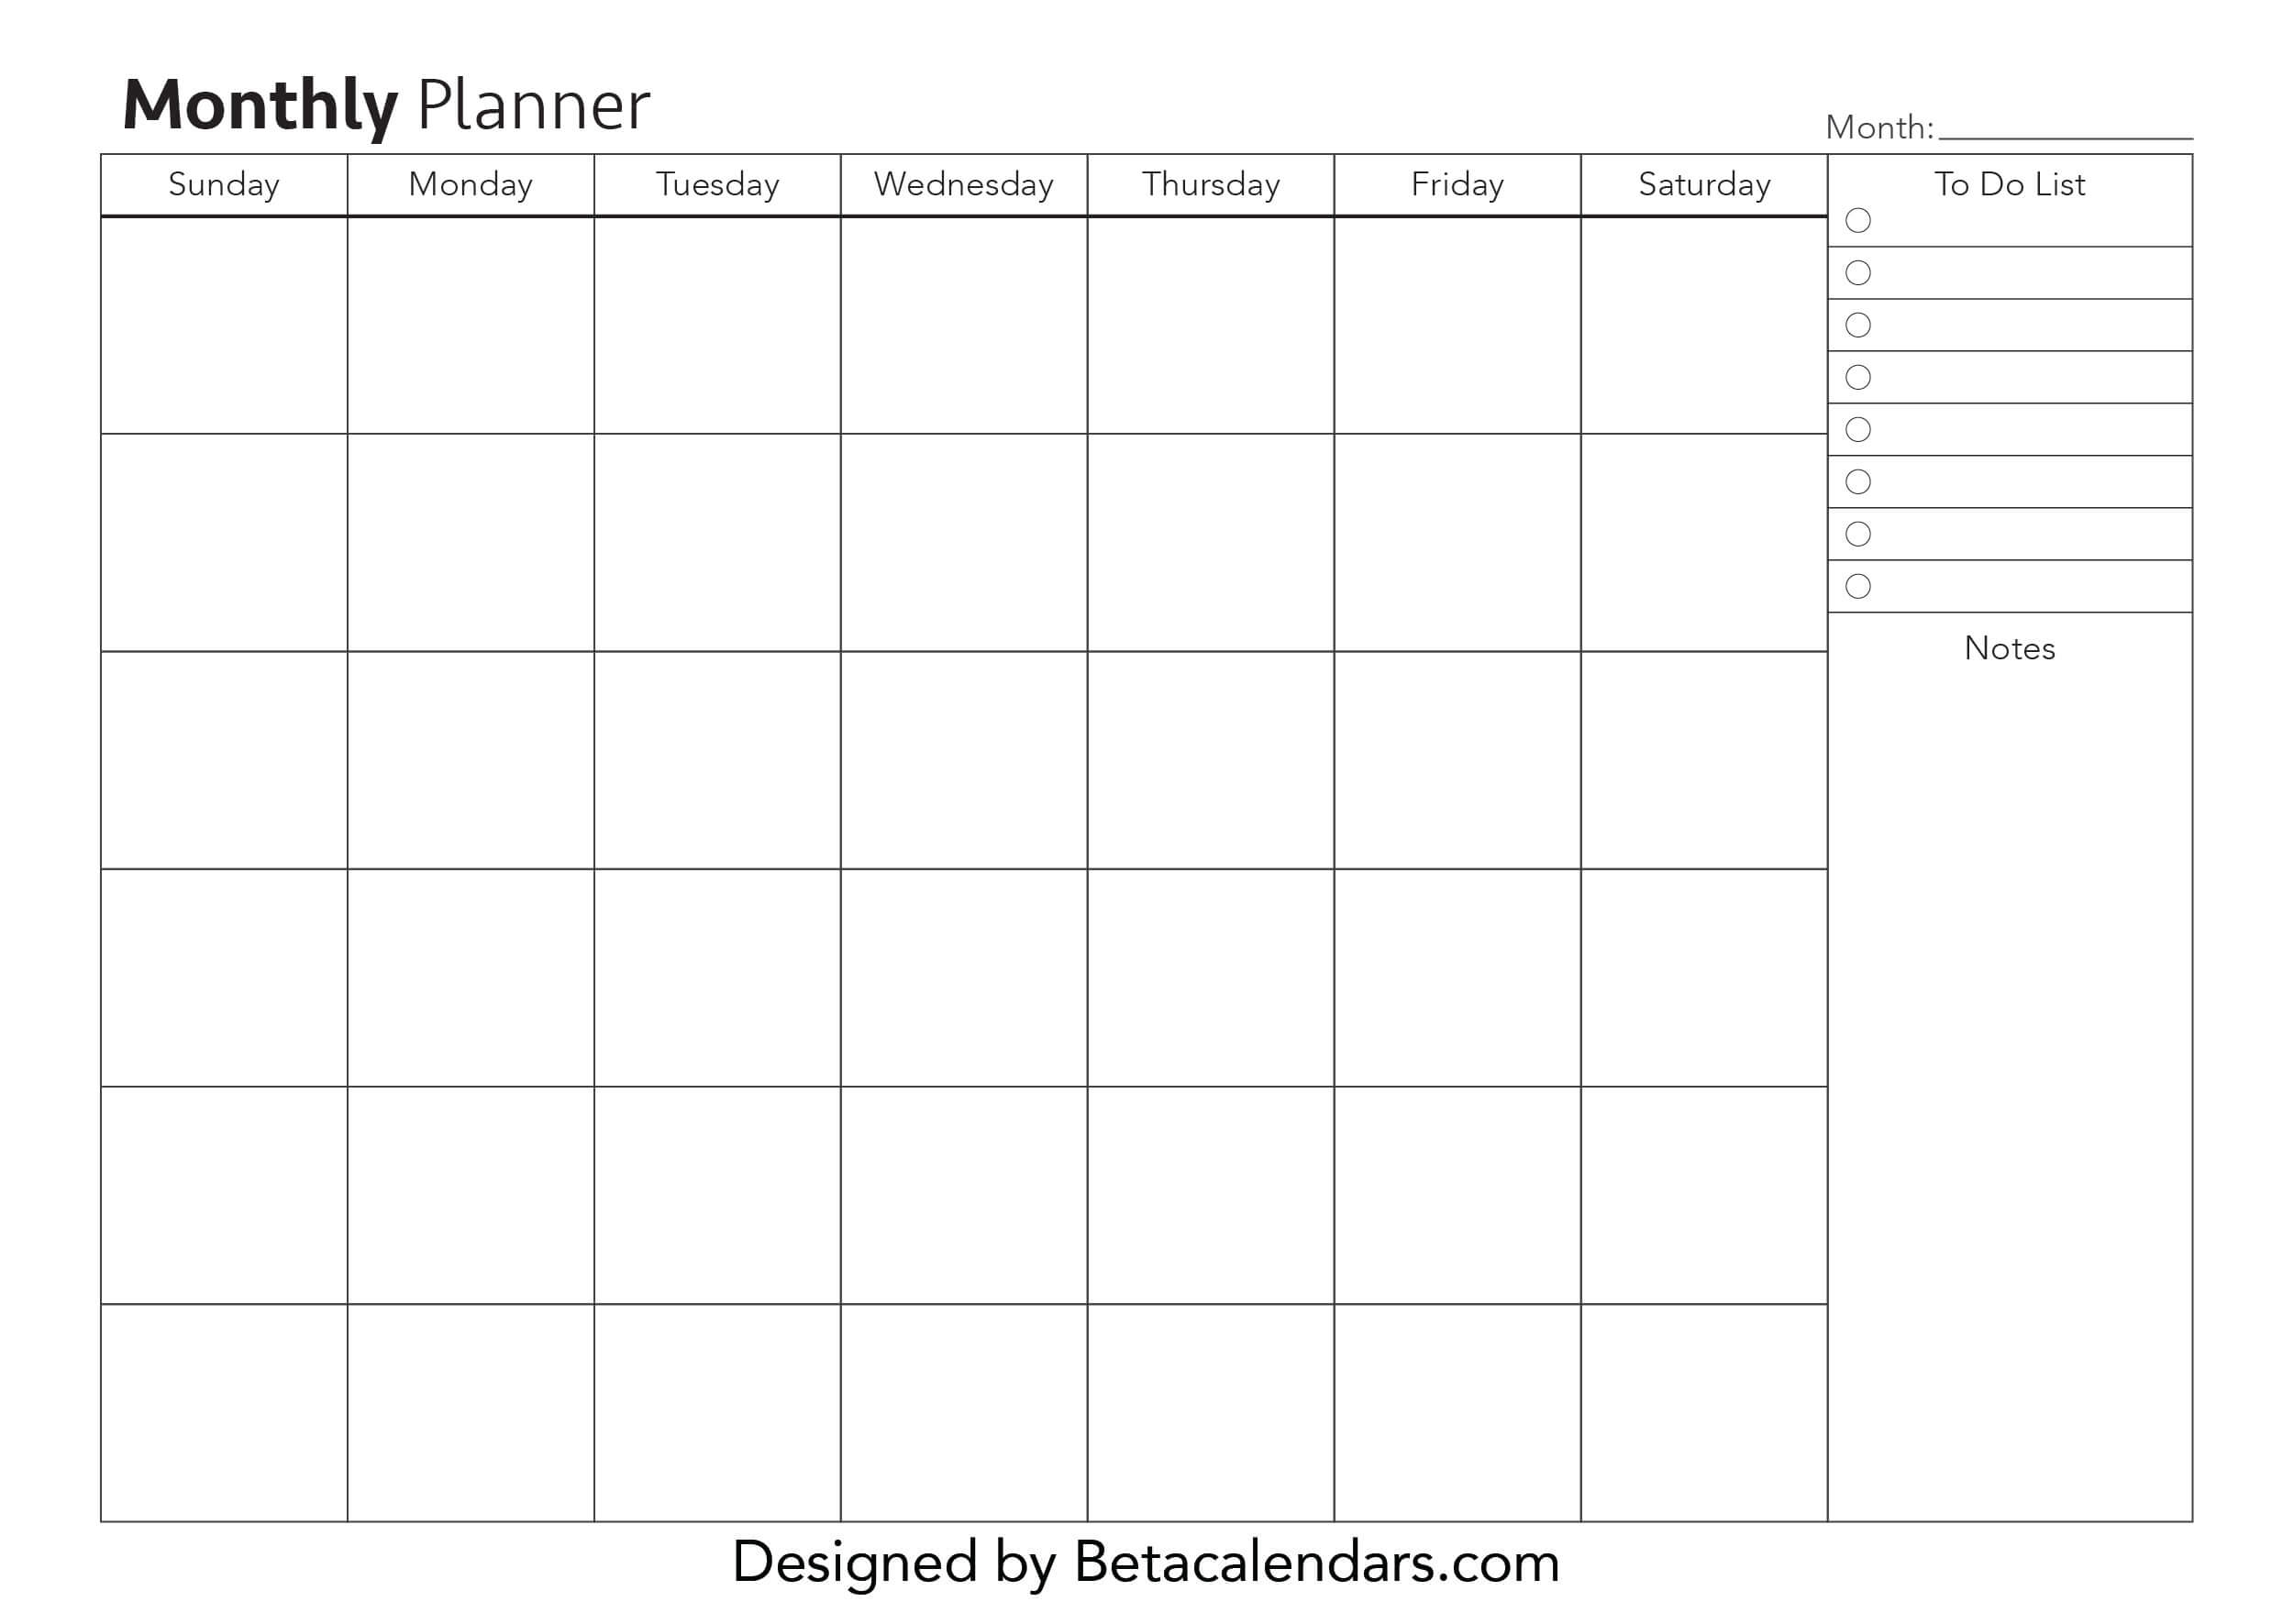 Free Printable Monthly Planners